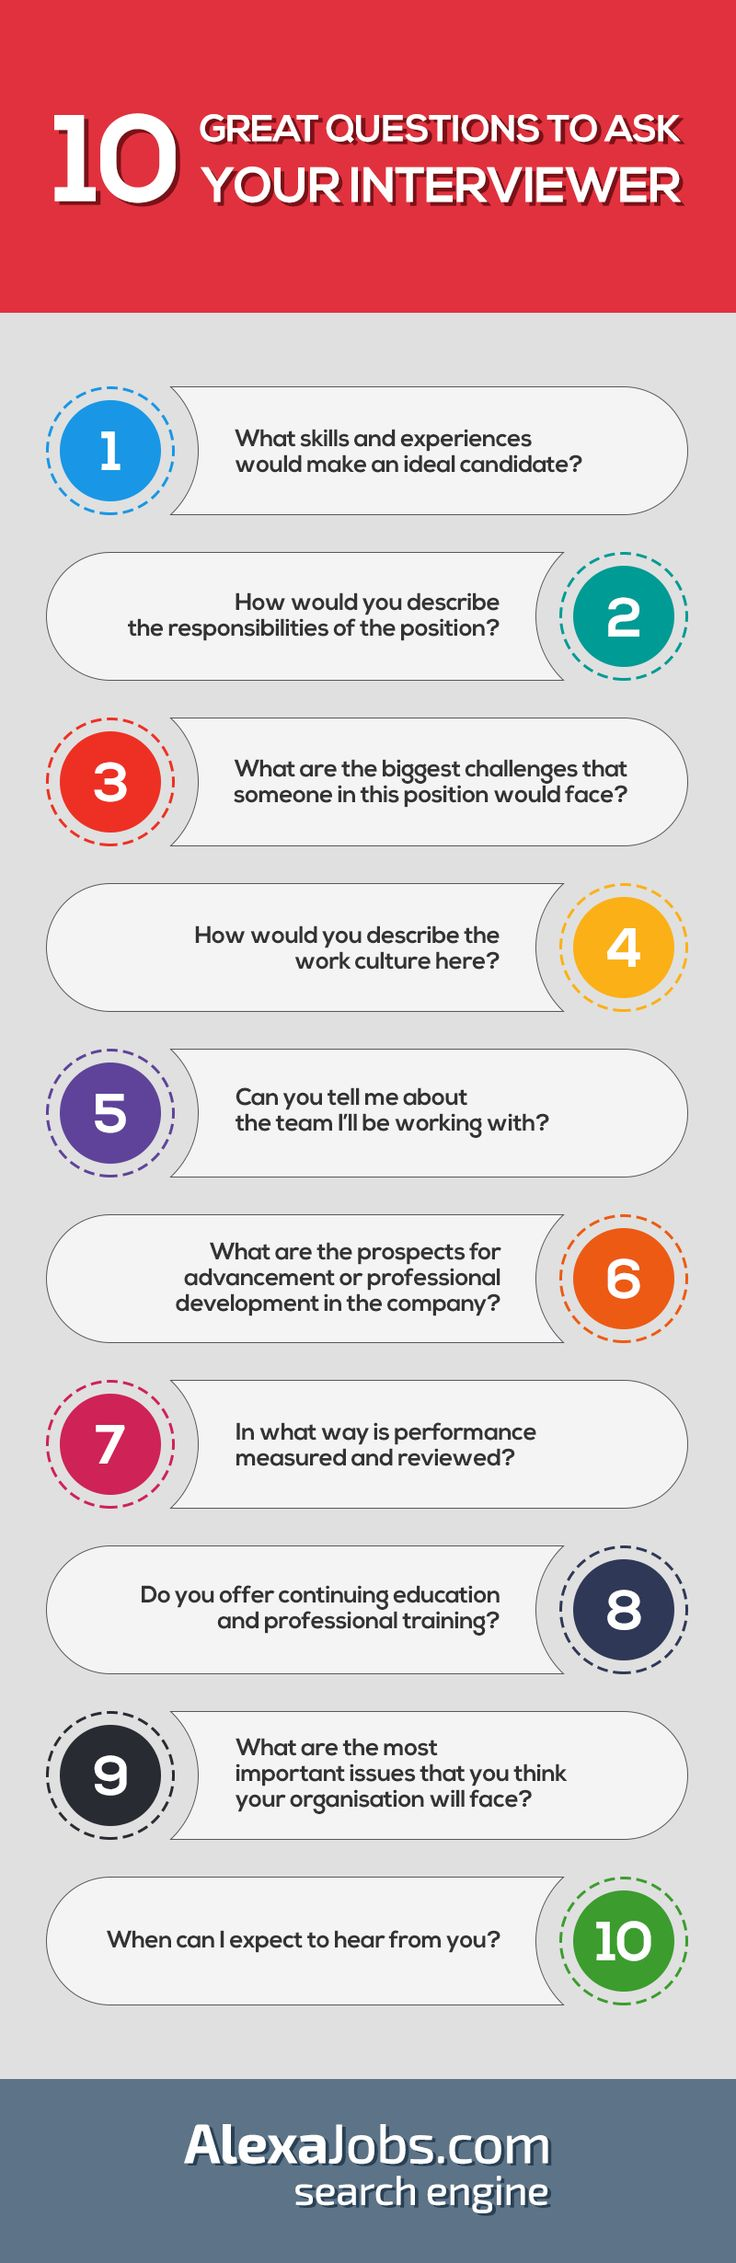 best ideas about tips for interview job infographic often job interviews can feel like an interrogation but they re meant to be a conversation between you and a potential employer